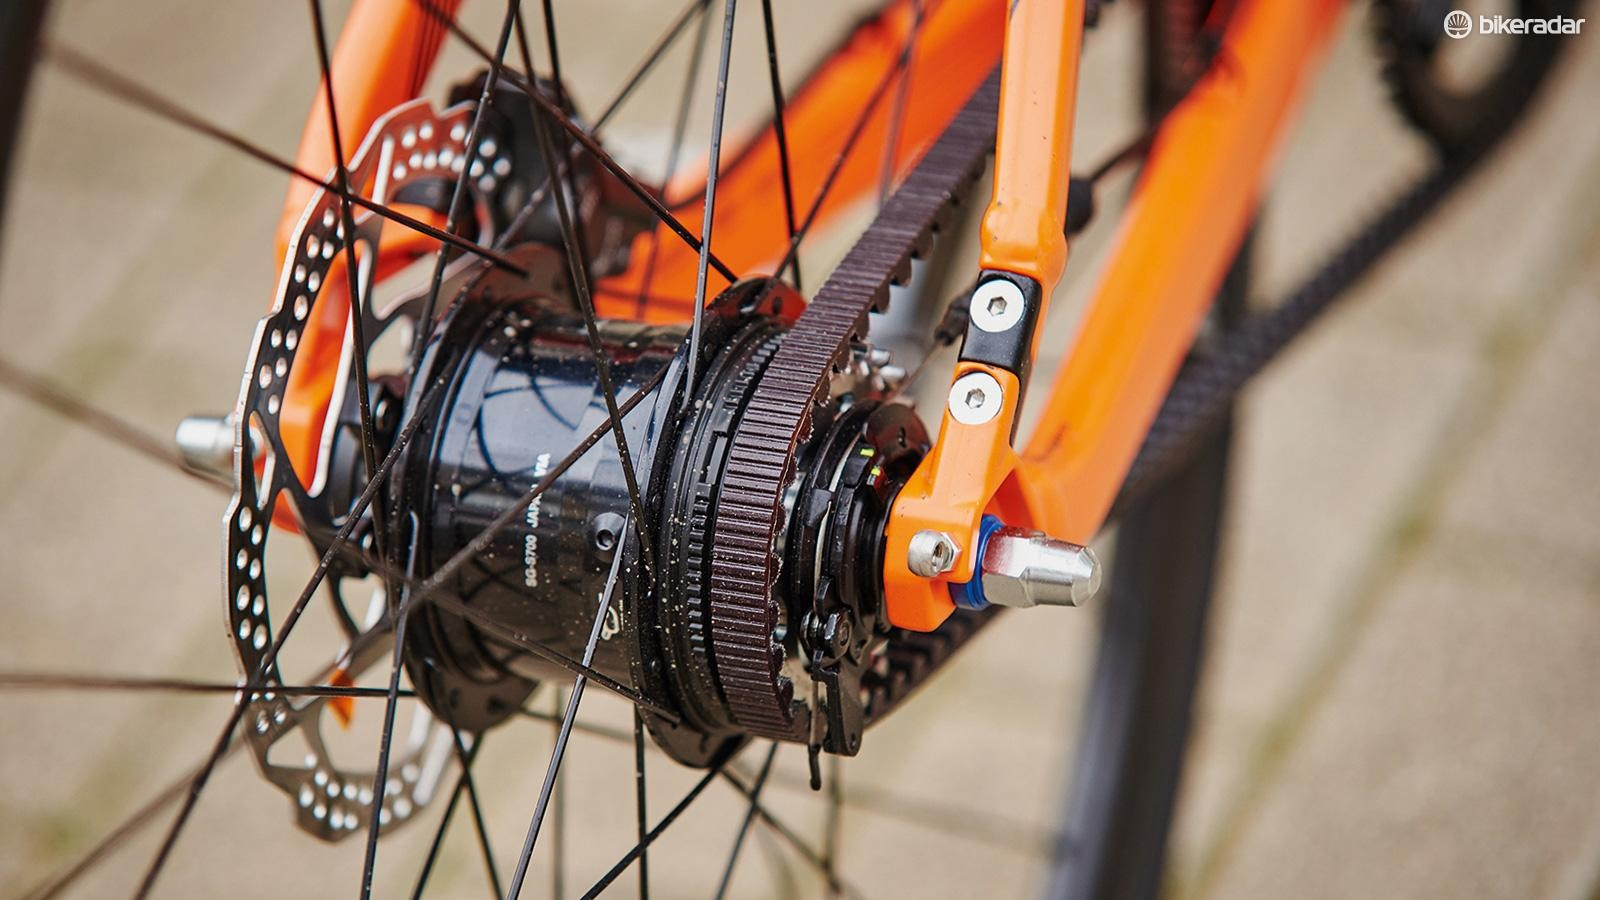 There's no chain on the Alpenchallenge but a a Gates carbon belt instead